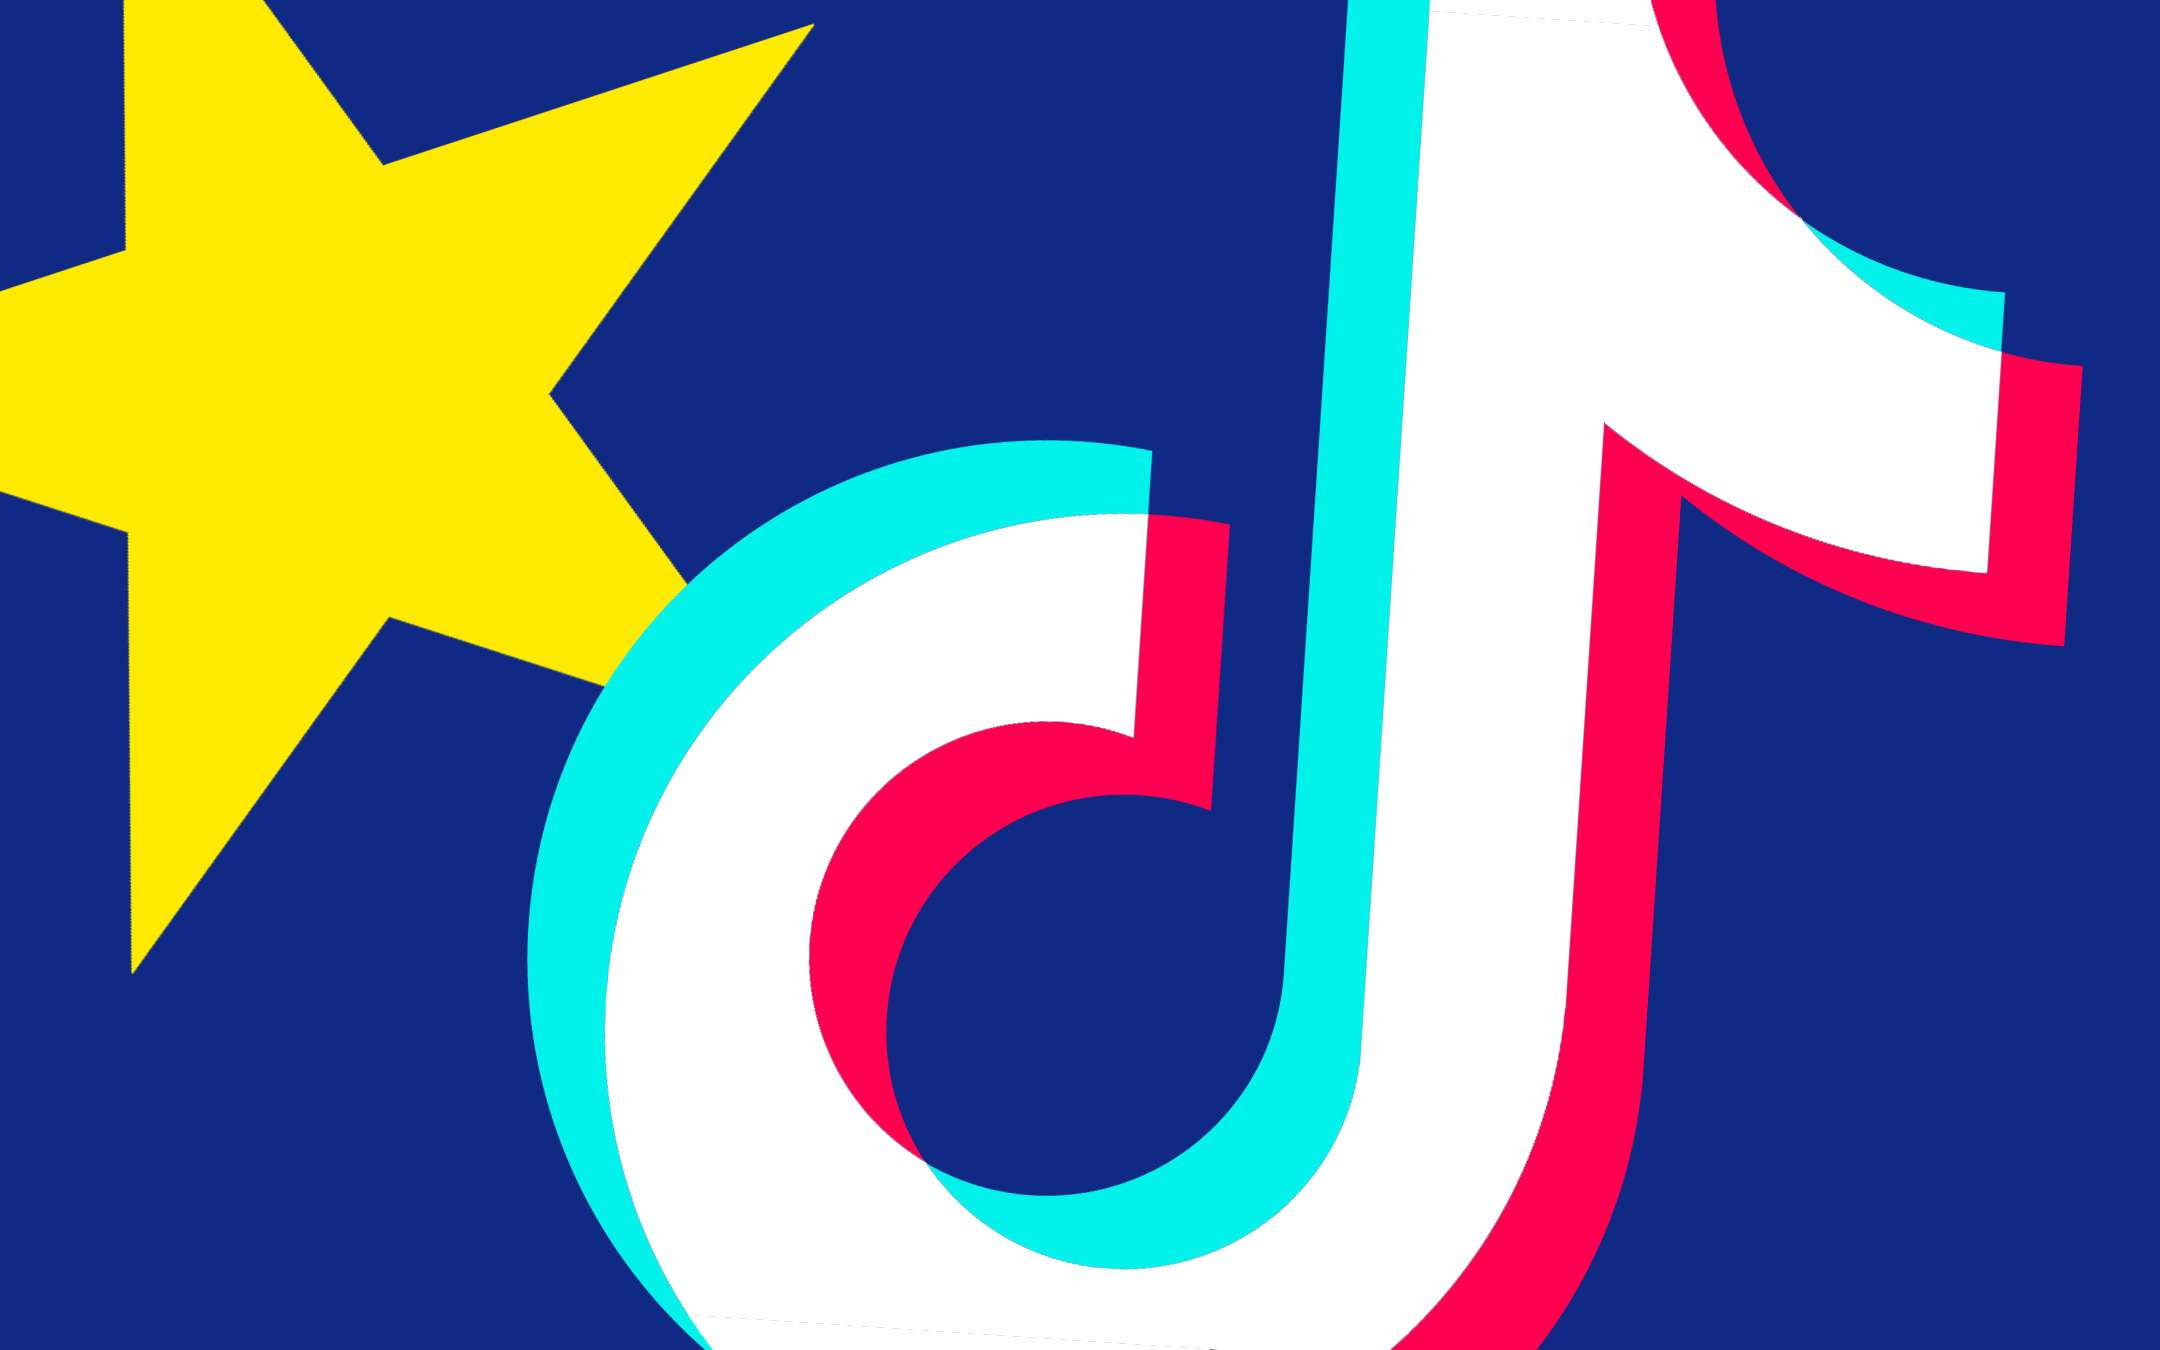 TikTok ends up in BEUC's sights in Europe